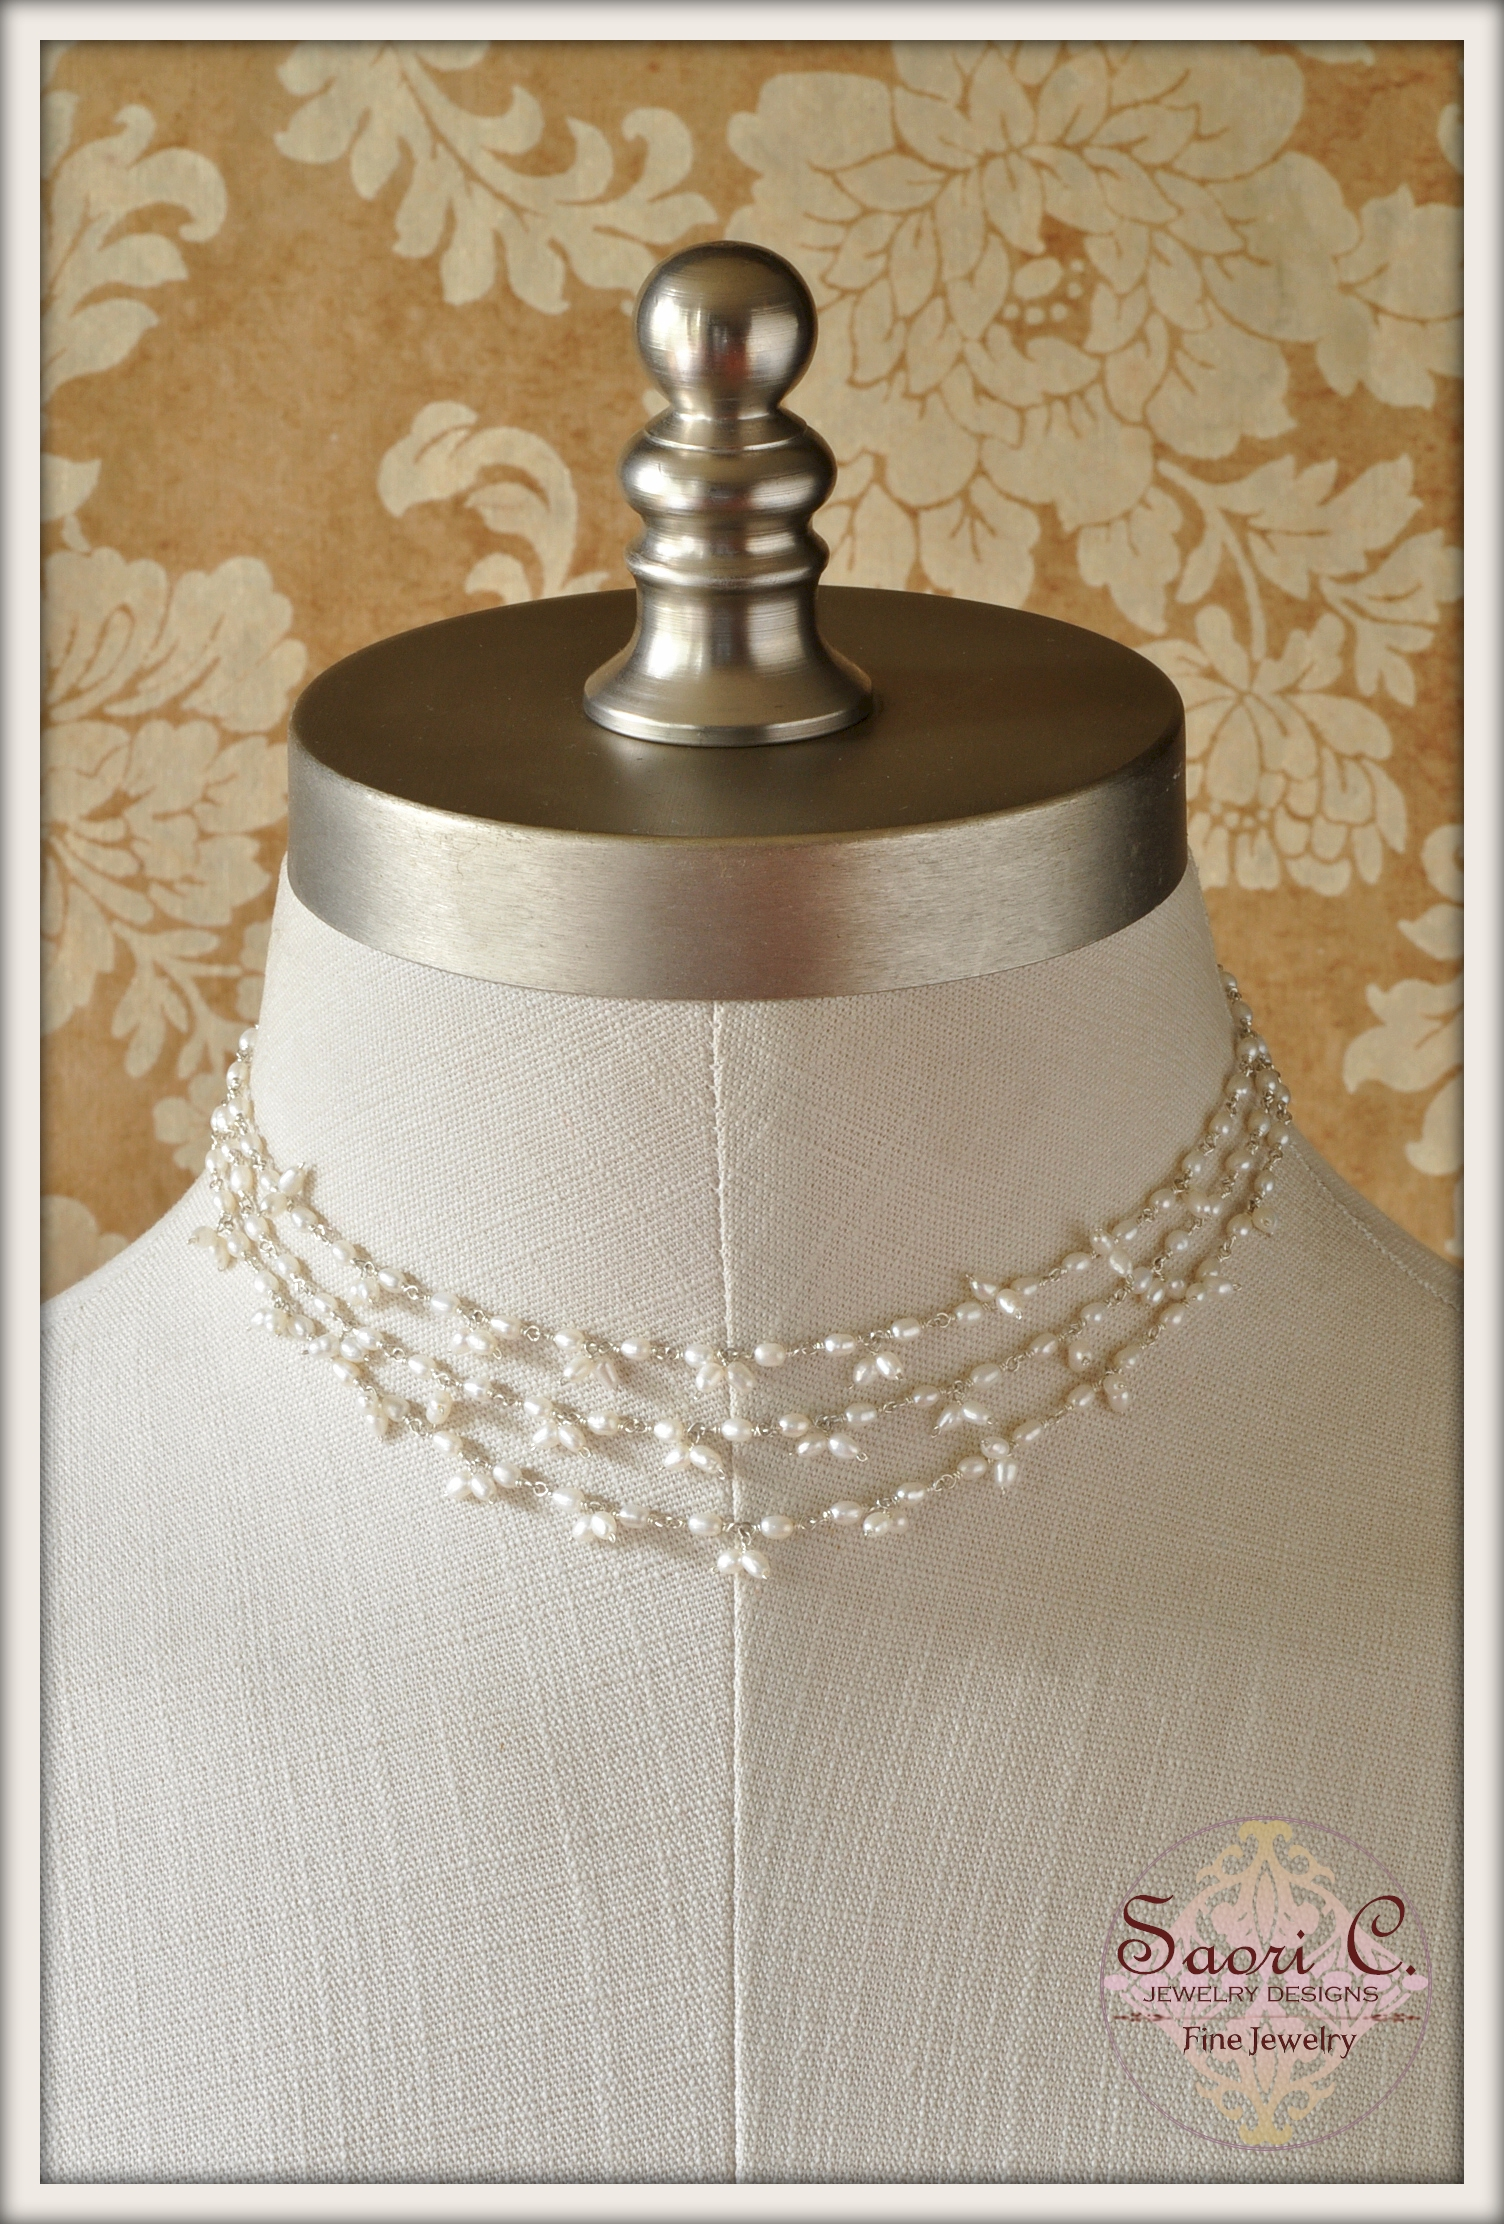 Hazy Illusion Pearl Necklace